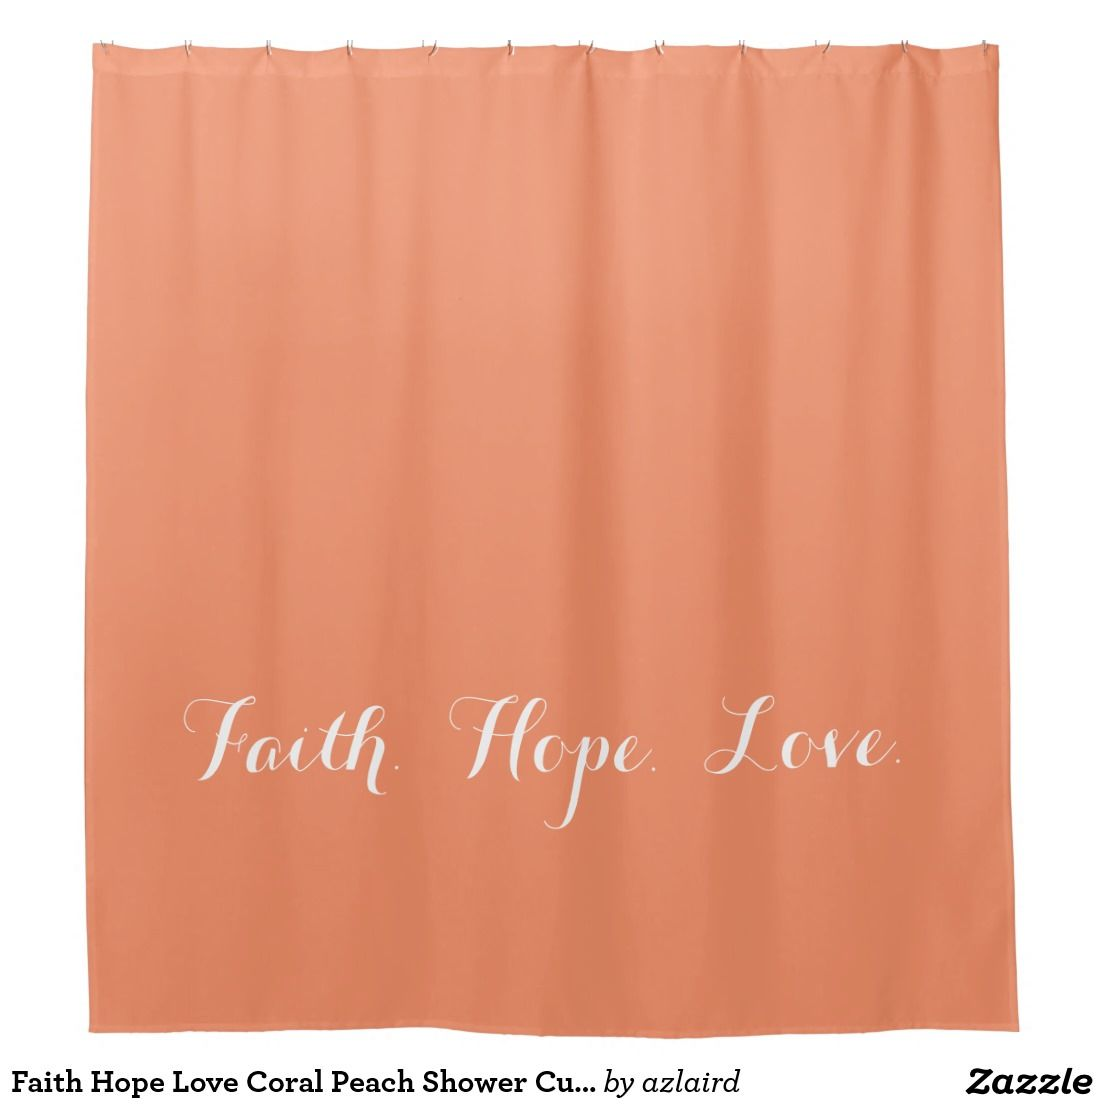 Faith Hope Love Coral Peach Shower Curtain